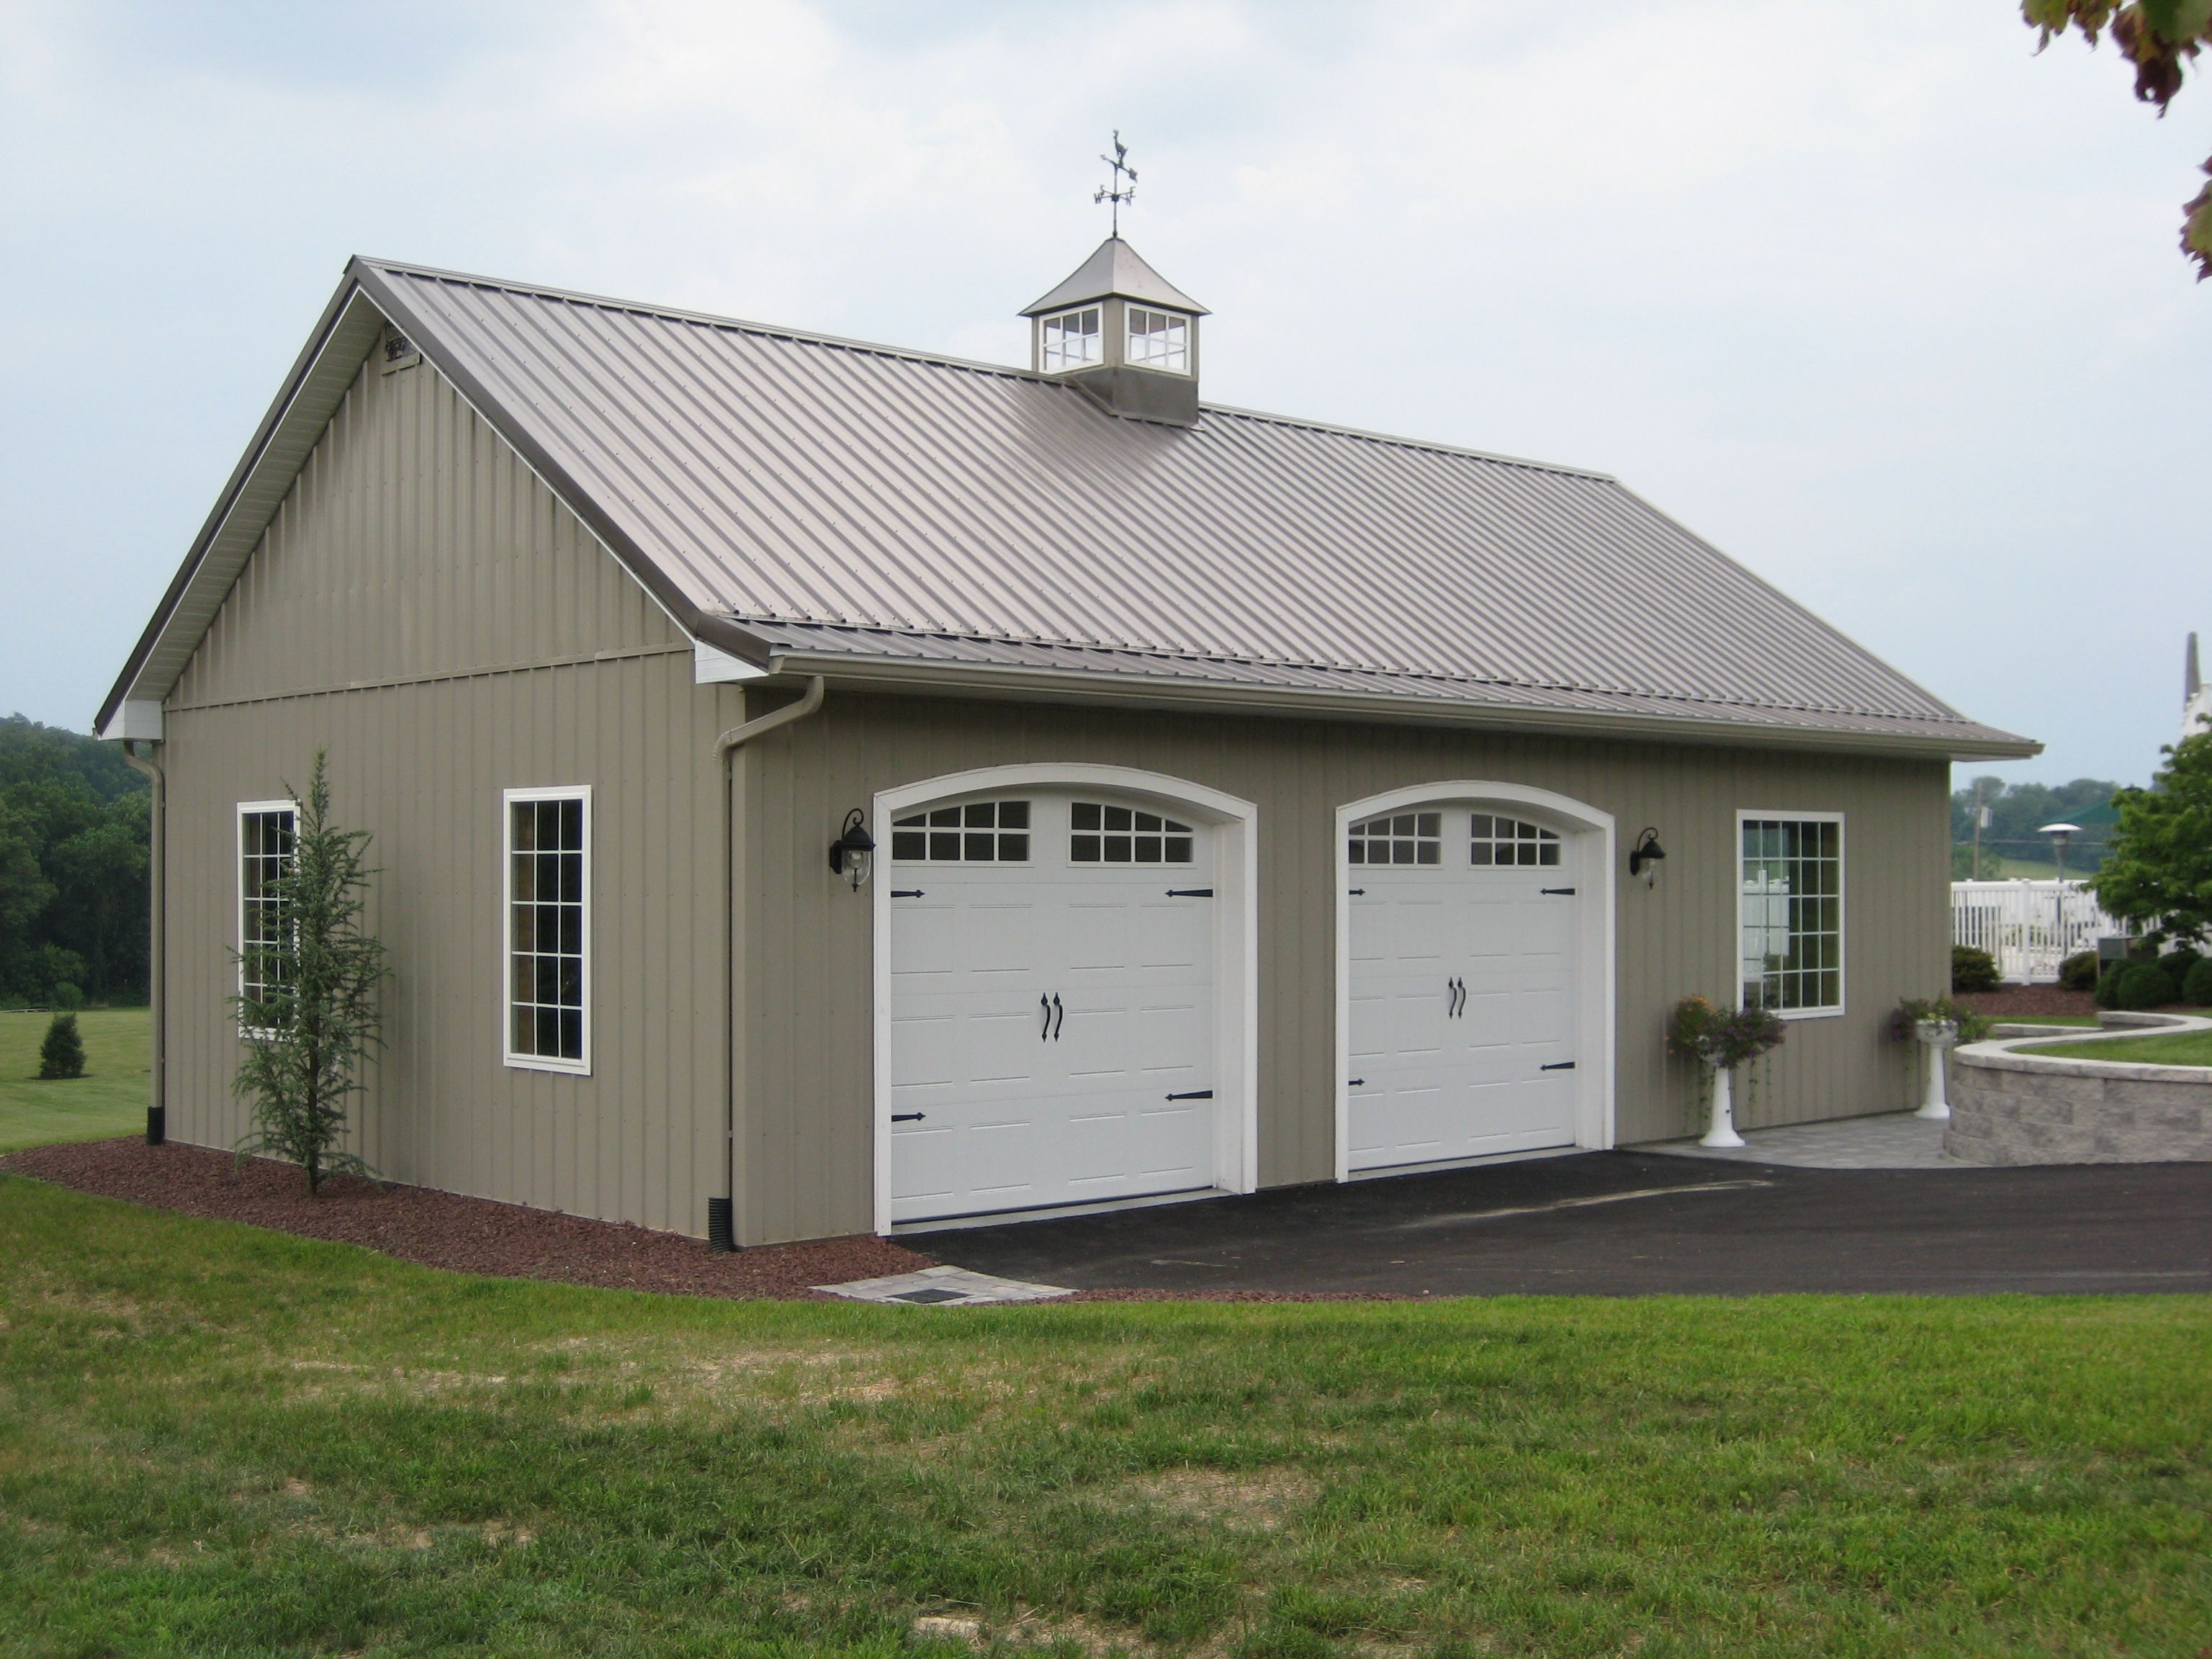 Best 25 pole barn garage ideas on pinterest pole barns pole buildings and metal shop building - Garage plans cost to build gallery ...